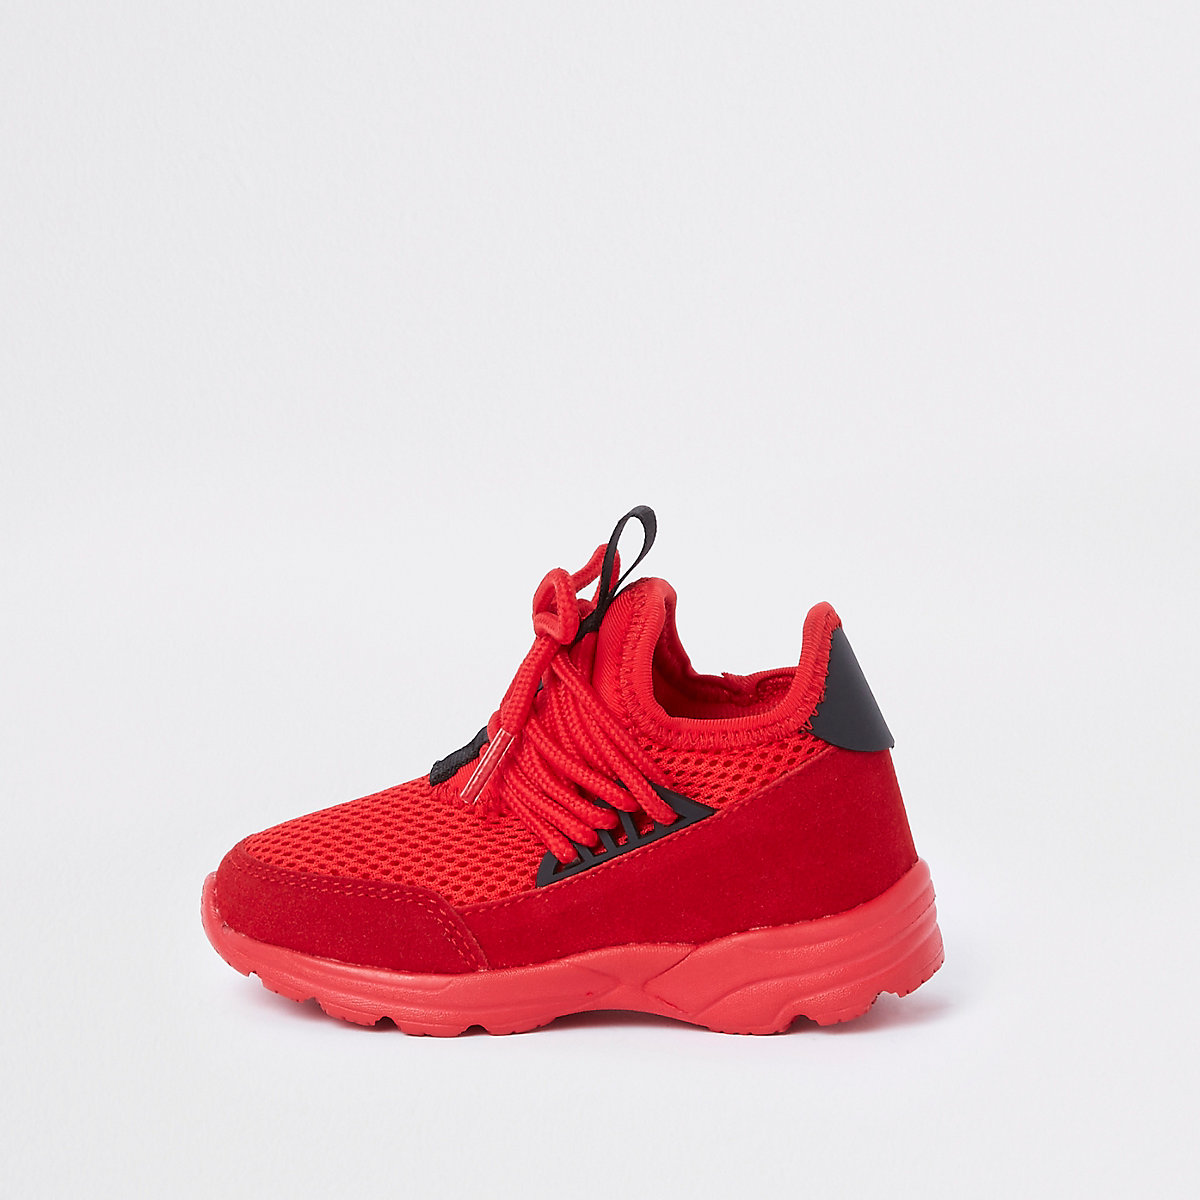 Baskets de sport rouges mini enfant